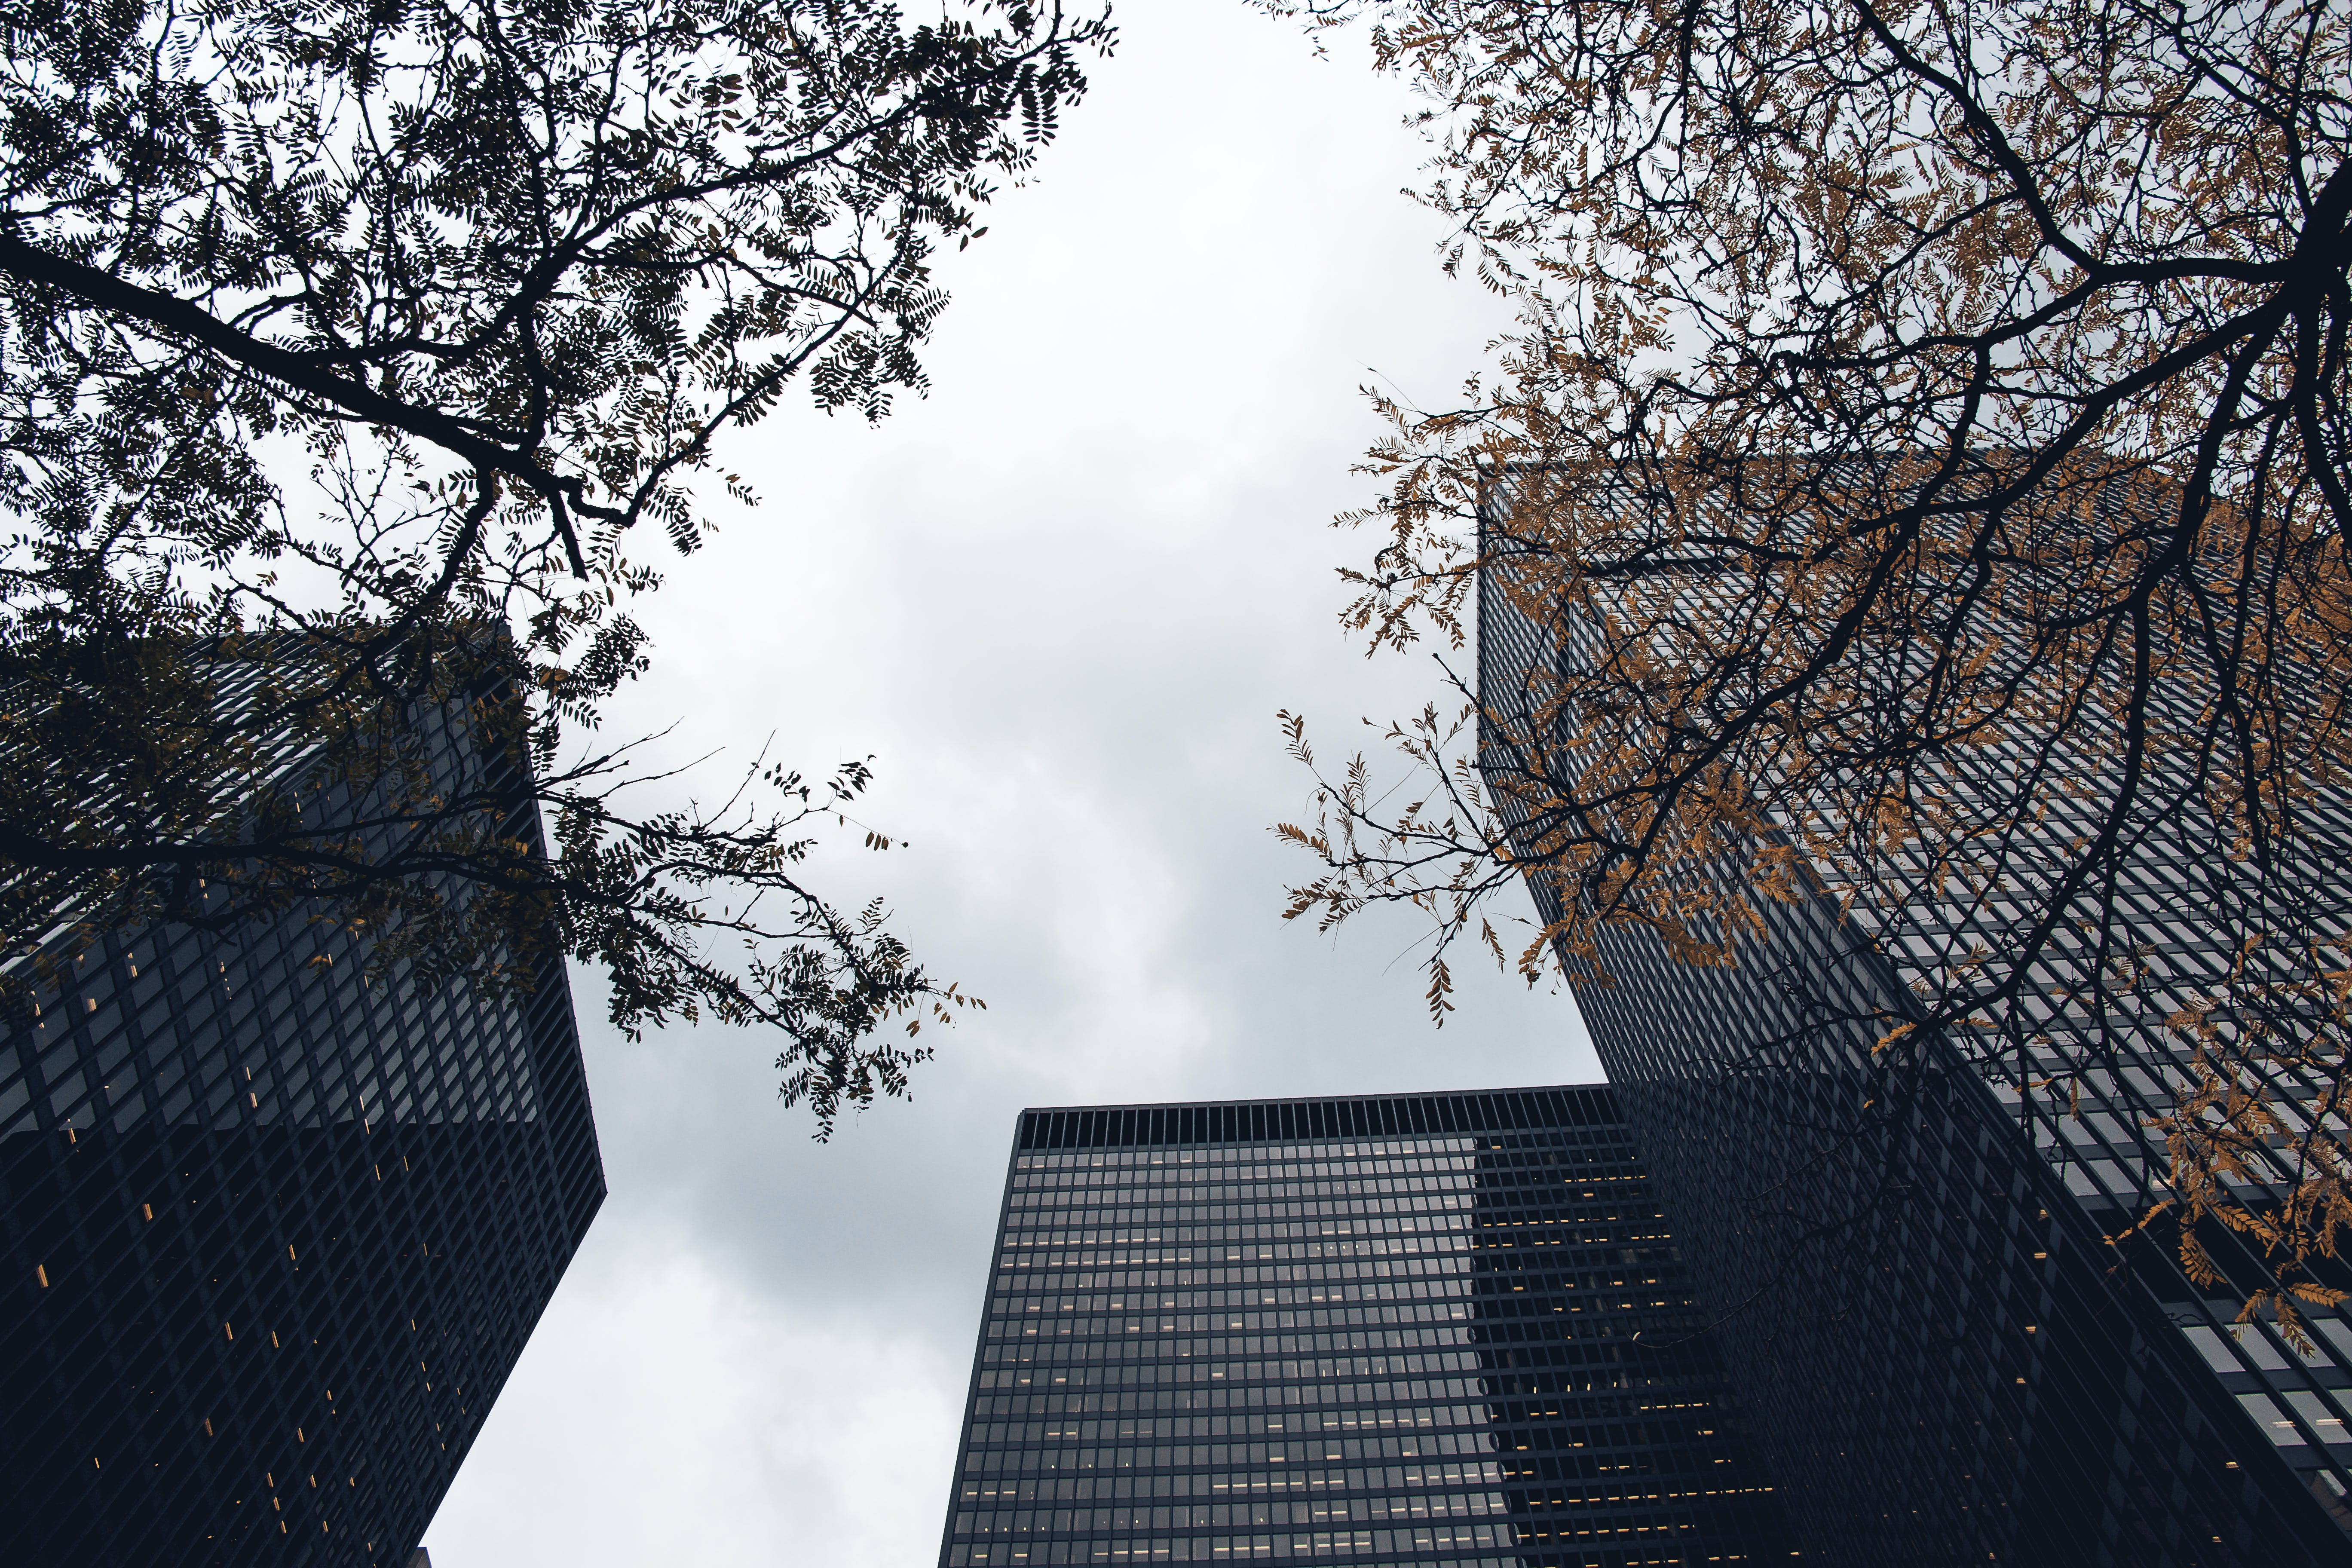 Worms Eye View of High Rise Buildings